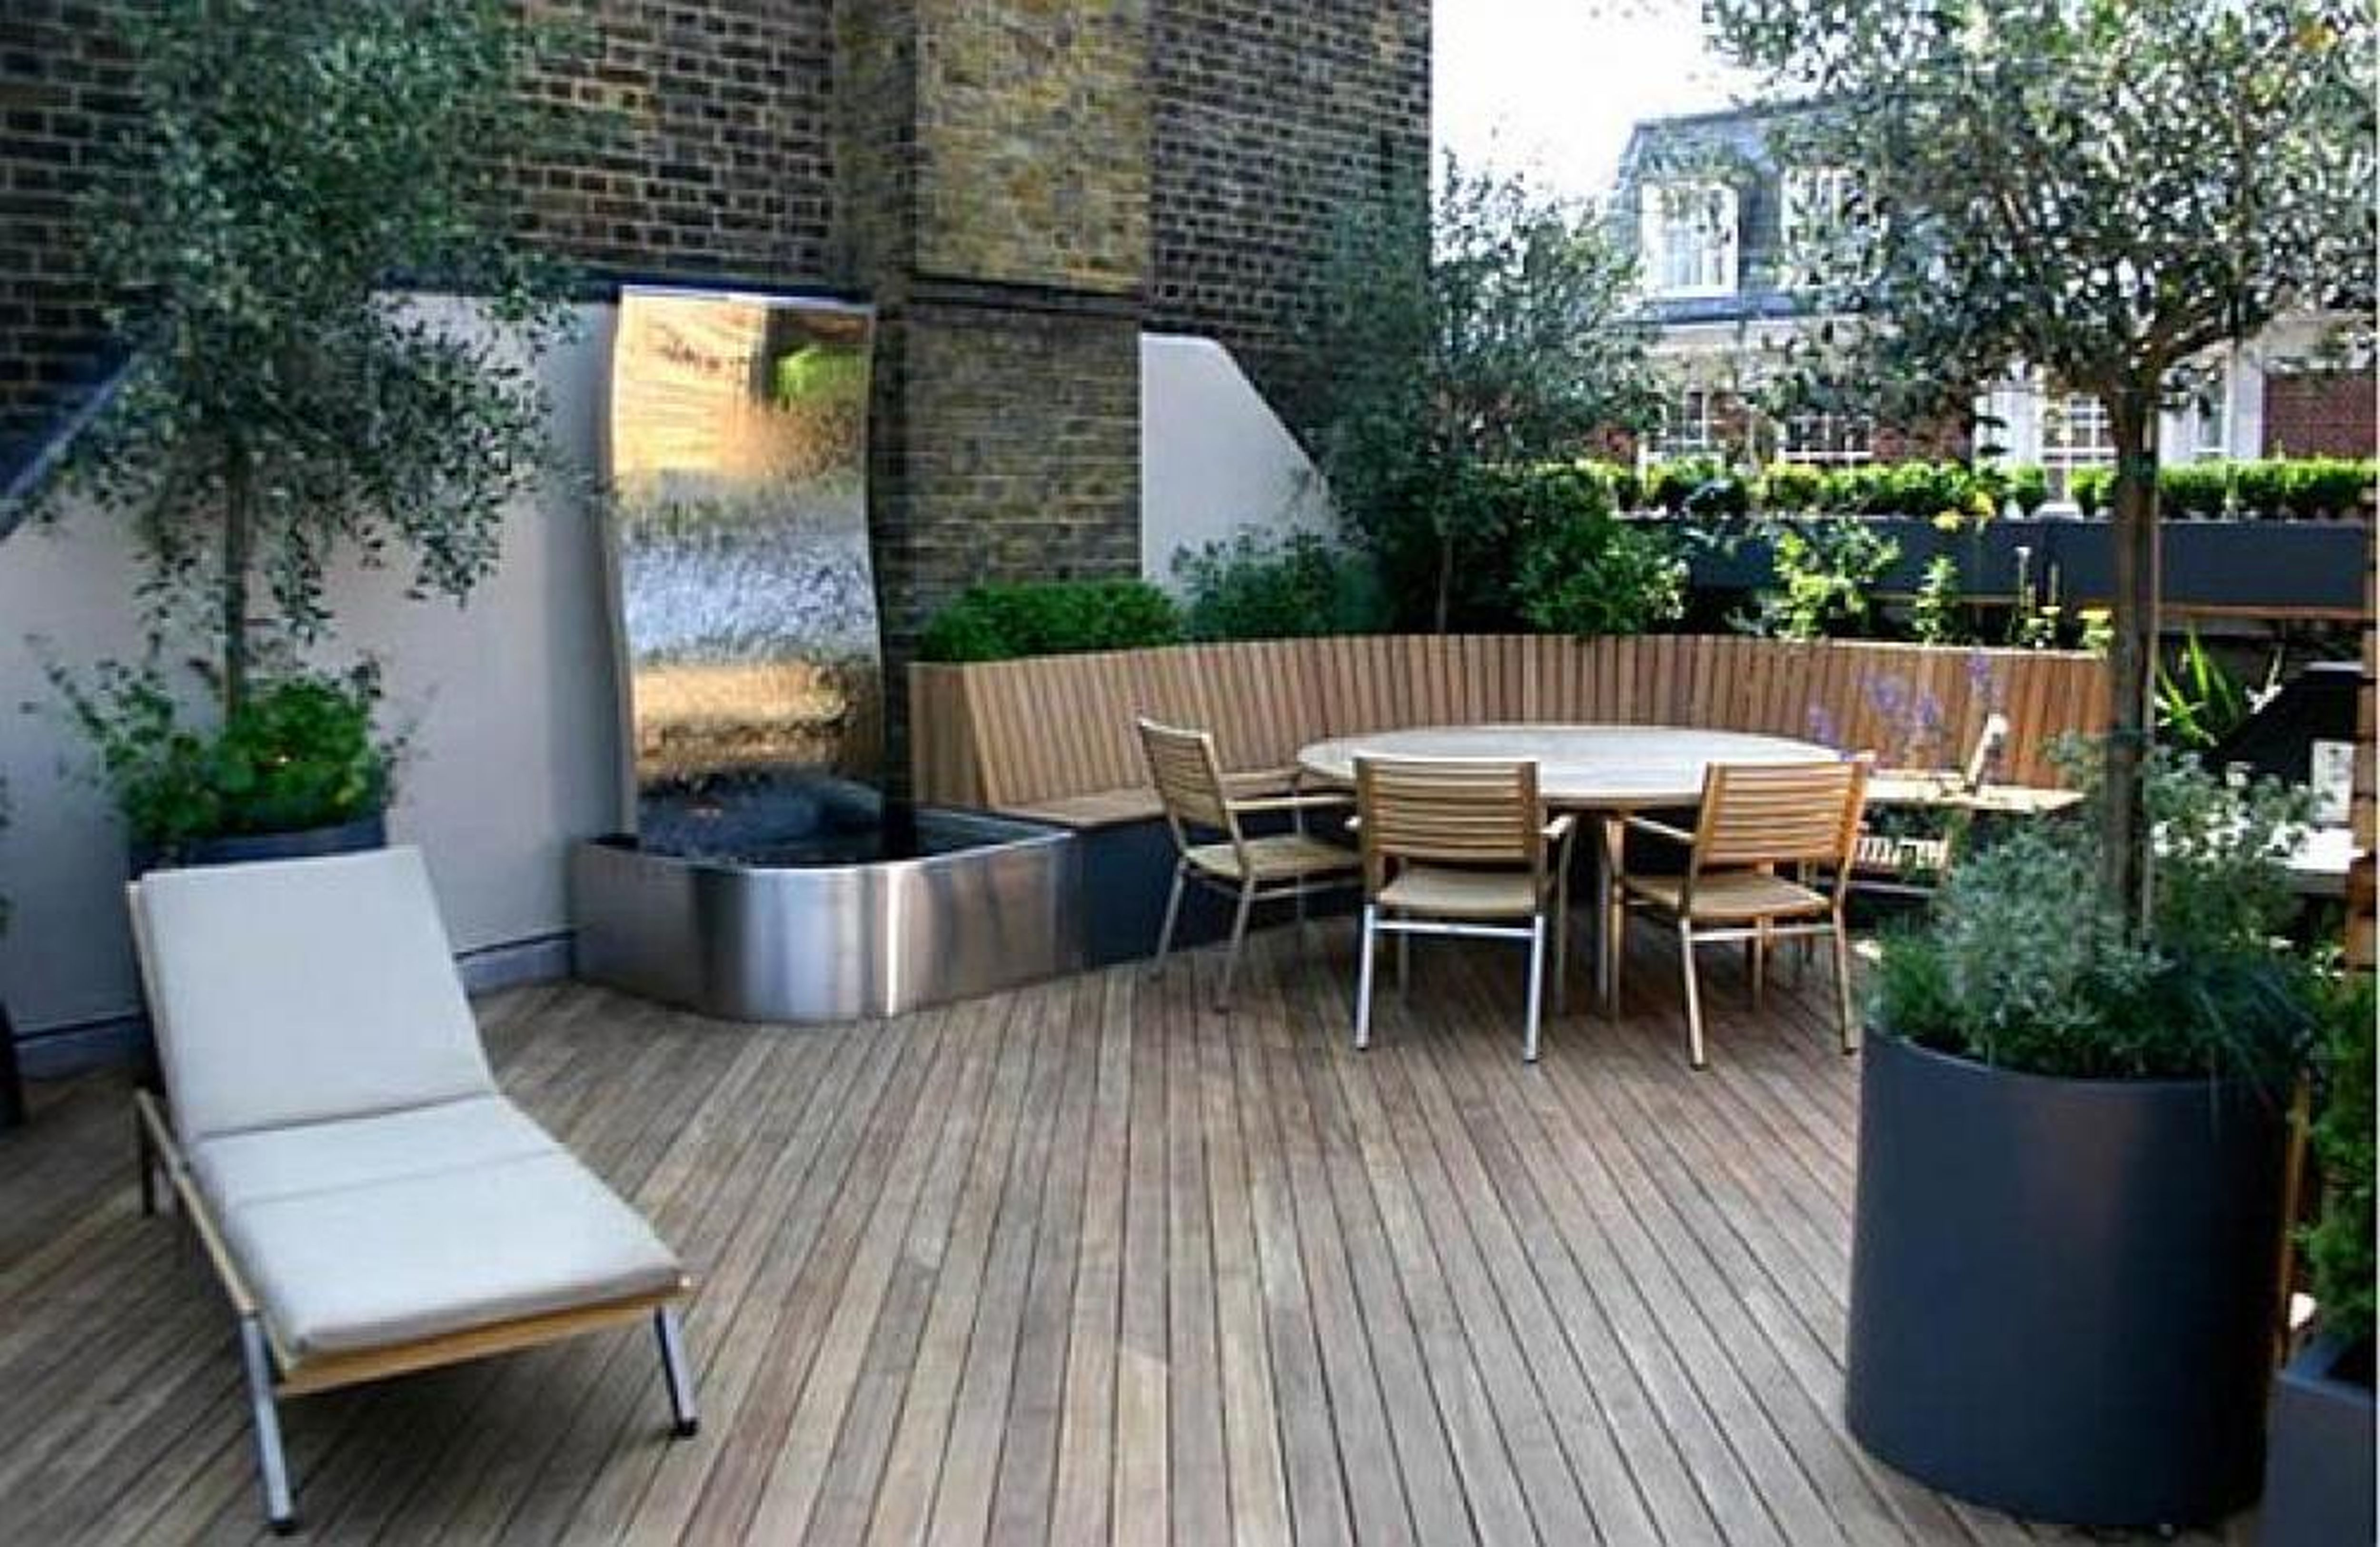 Patio deck balcony in landscape backyard balcony garden for Cool apartment patio ideas